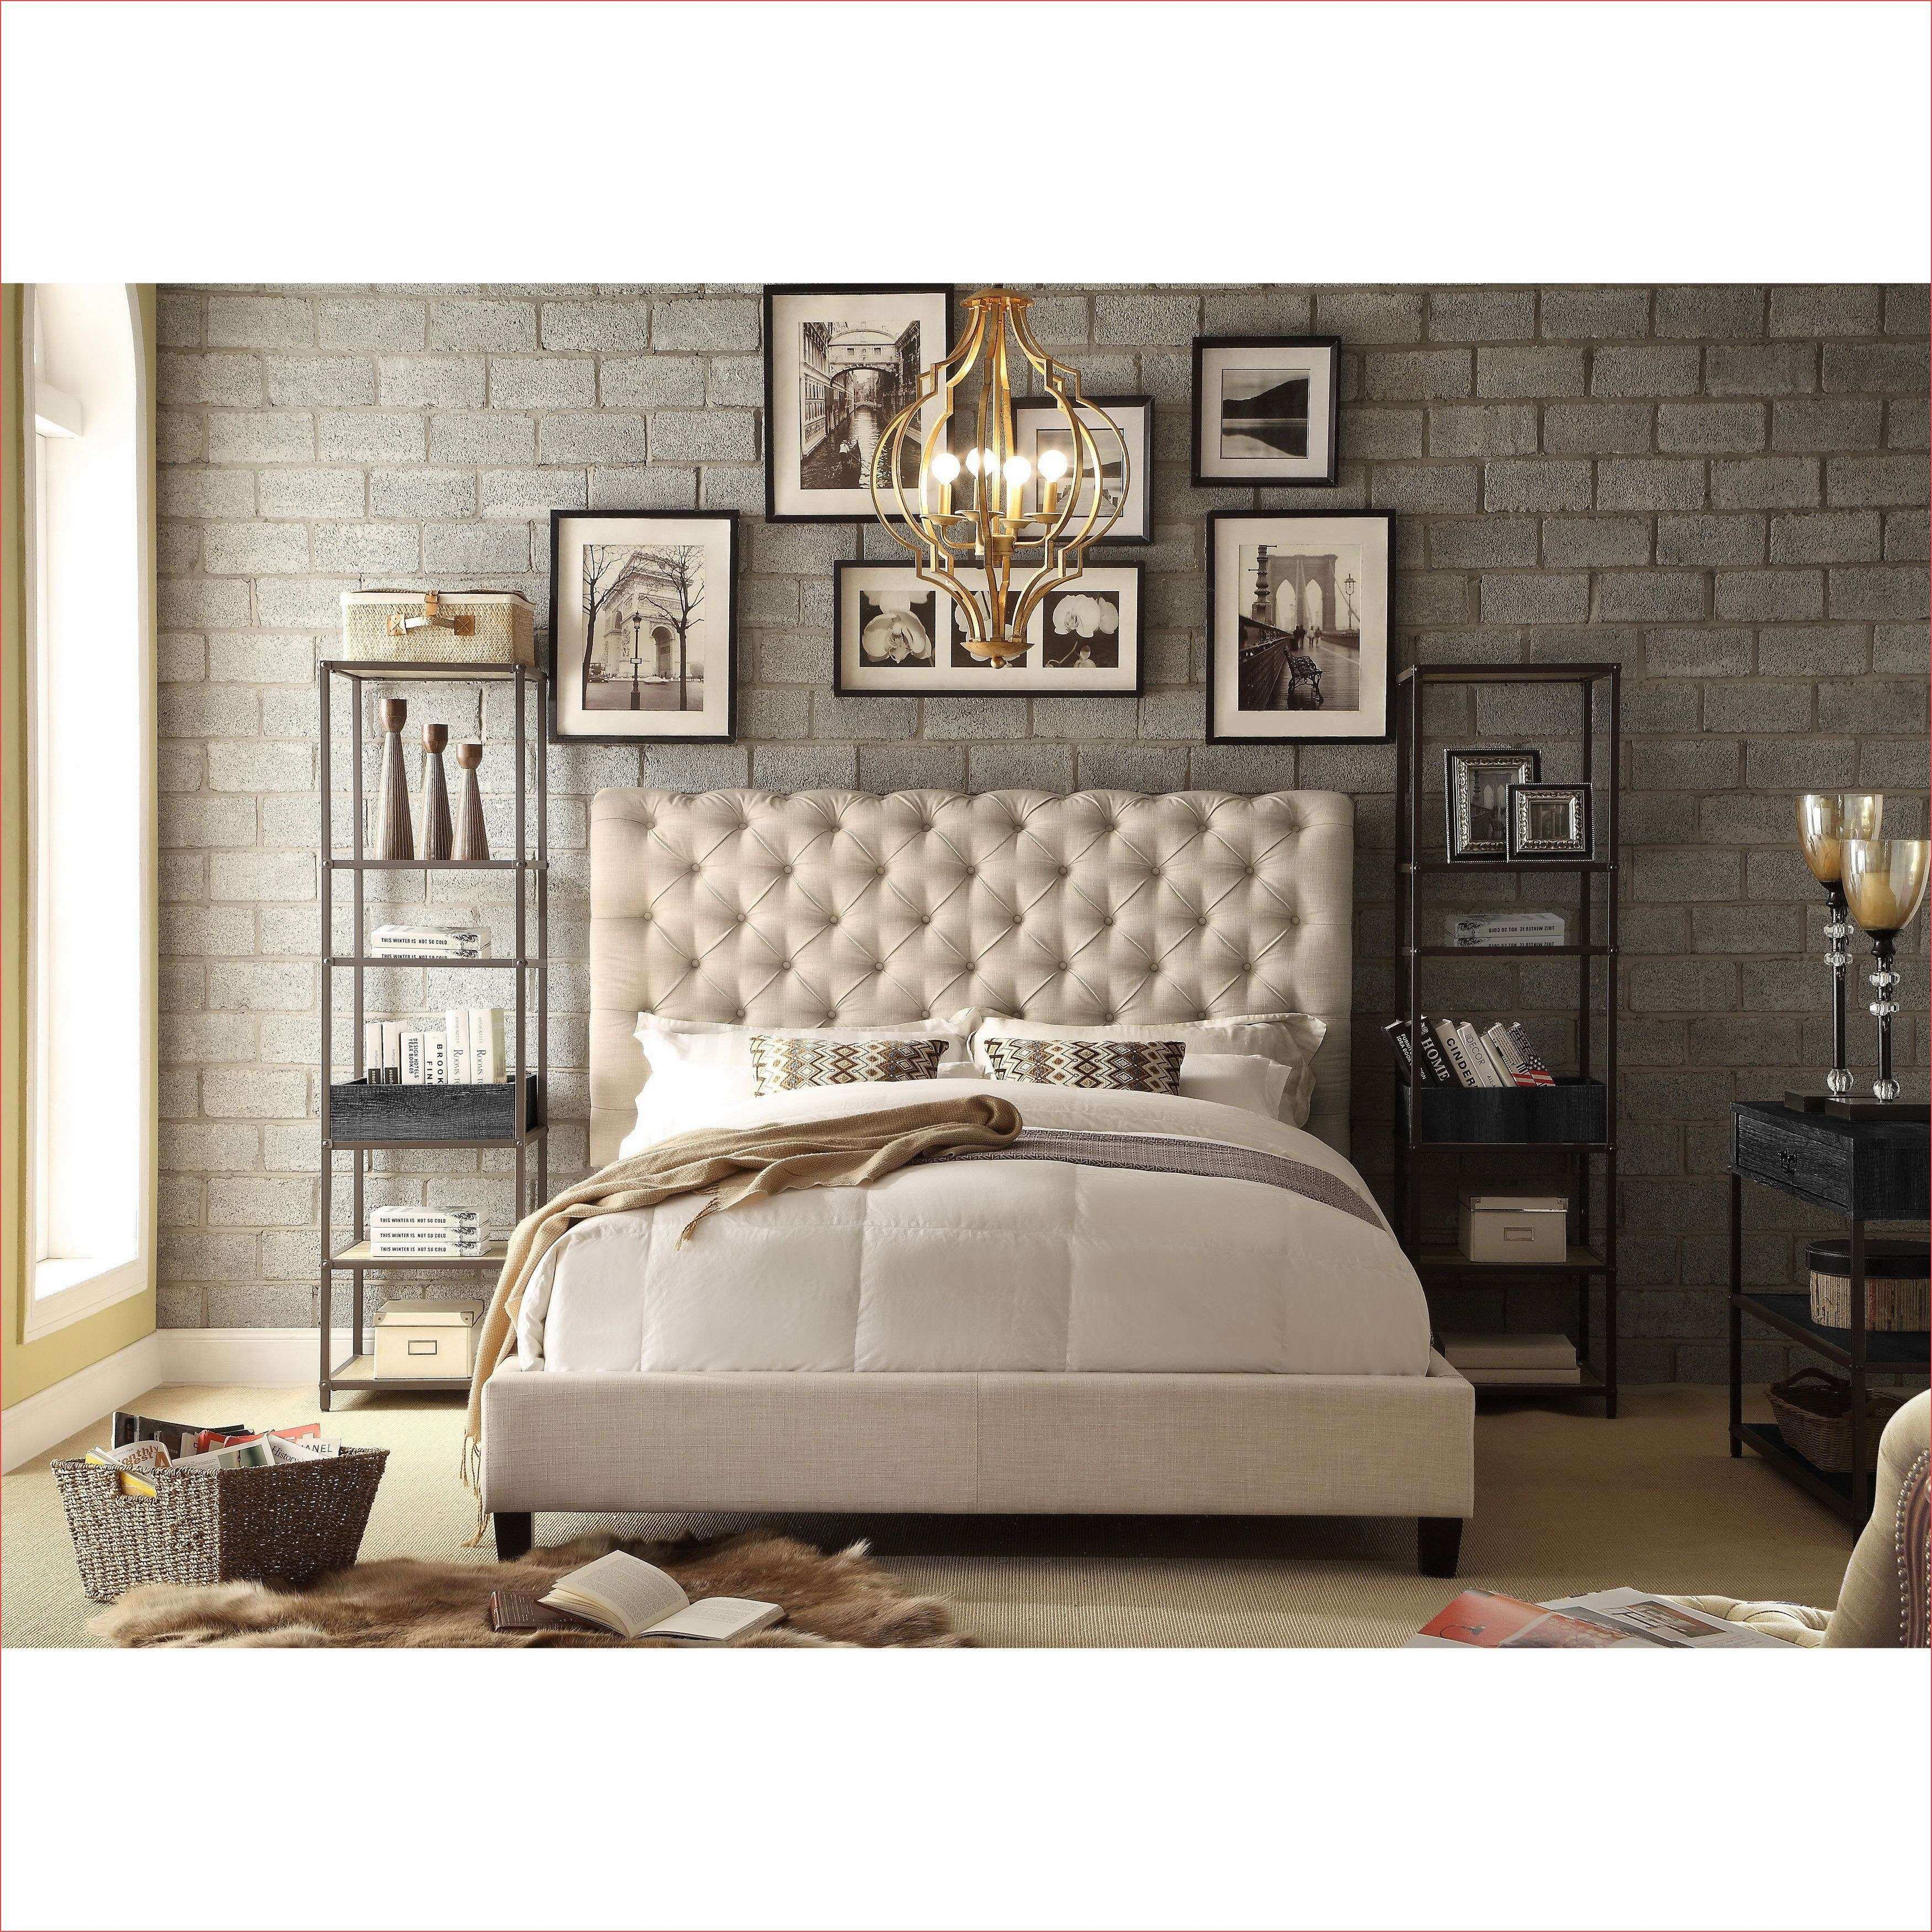 47 Awesome Retro Bedroom Furniture ExitRealEstate540